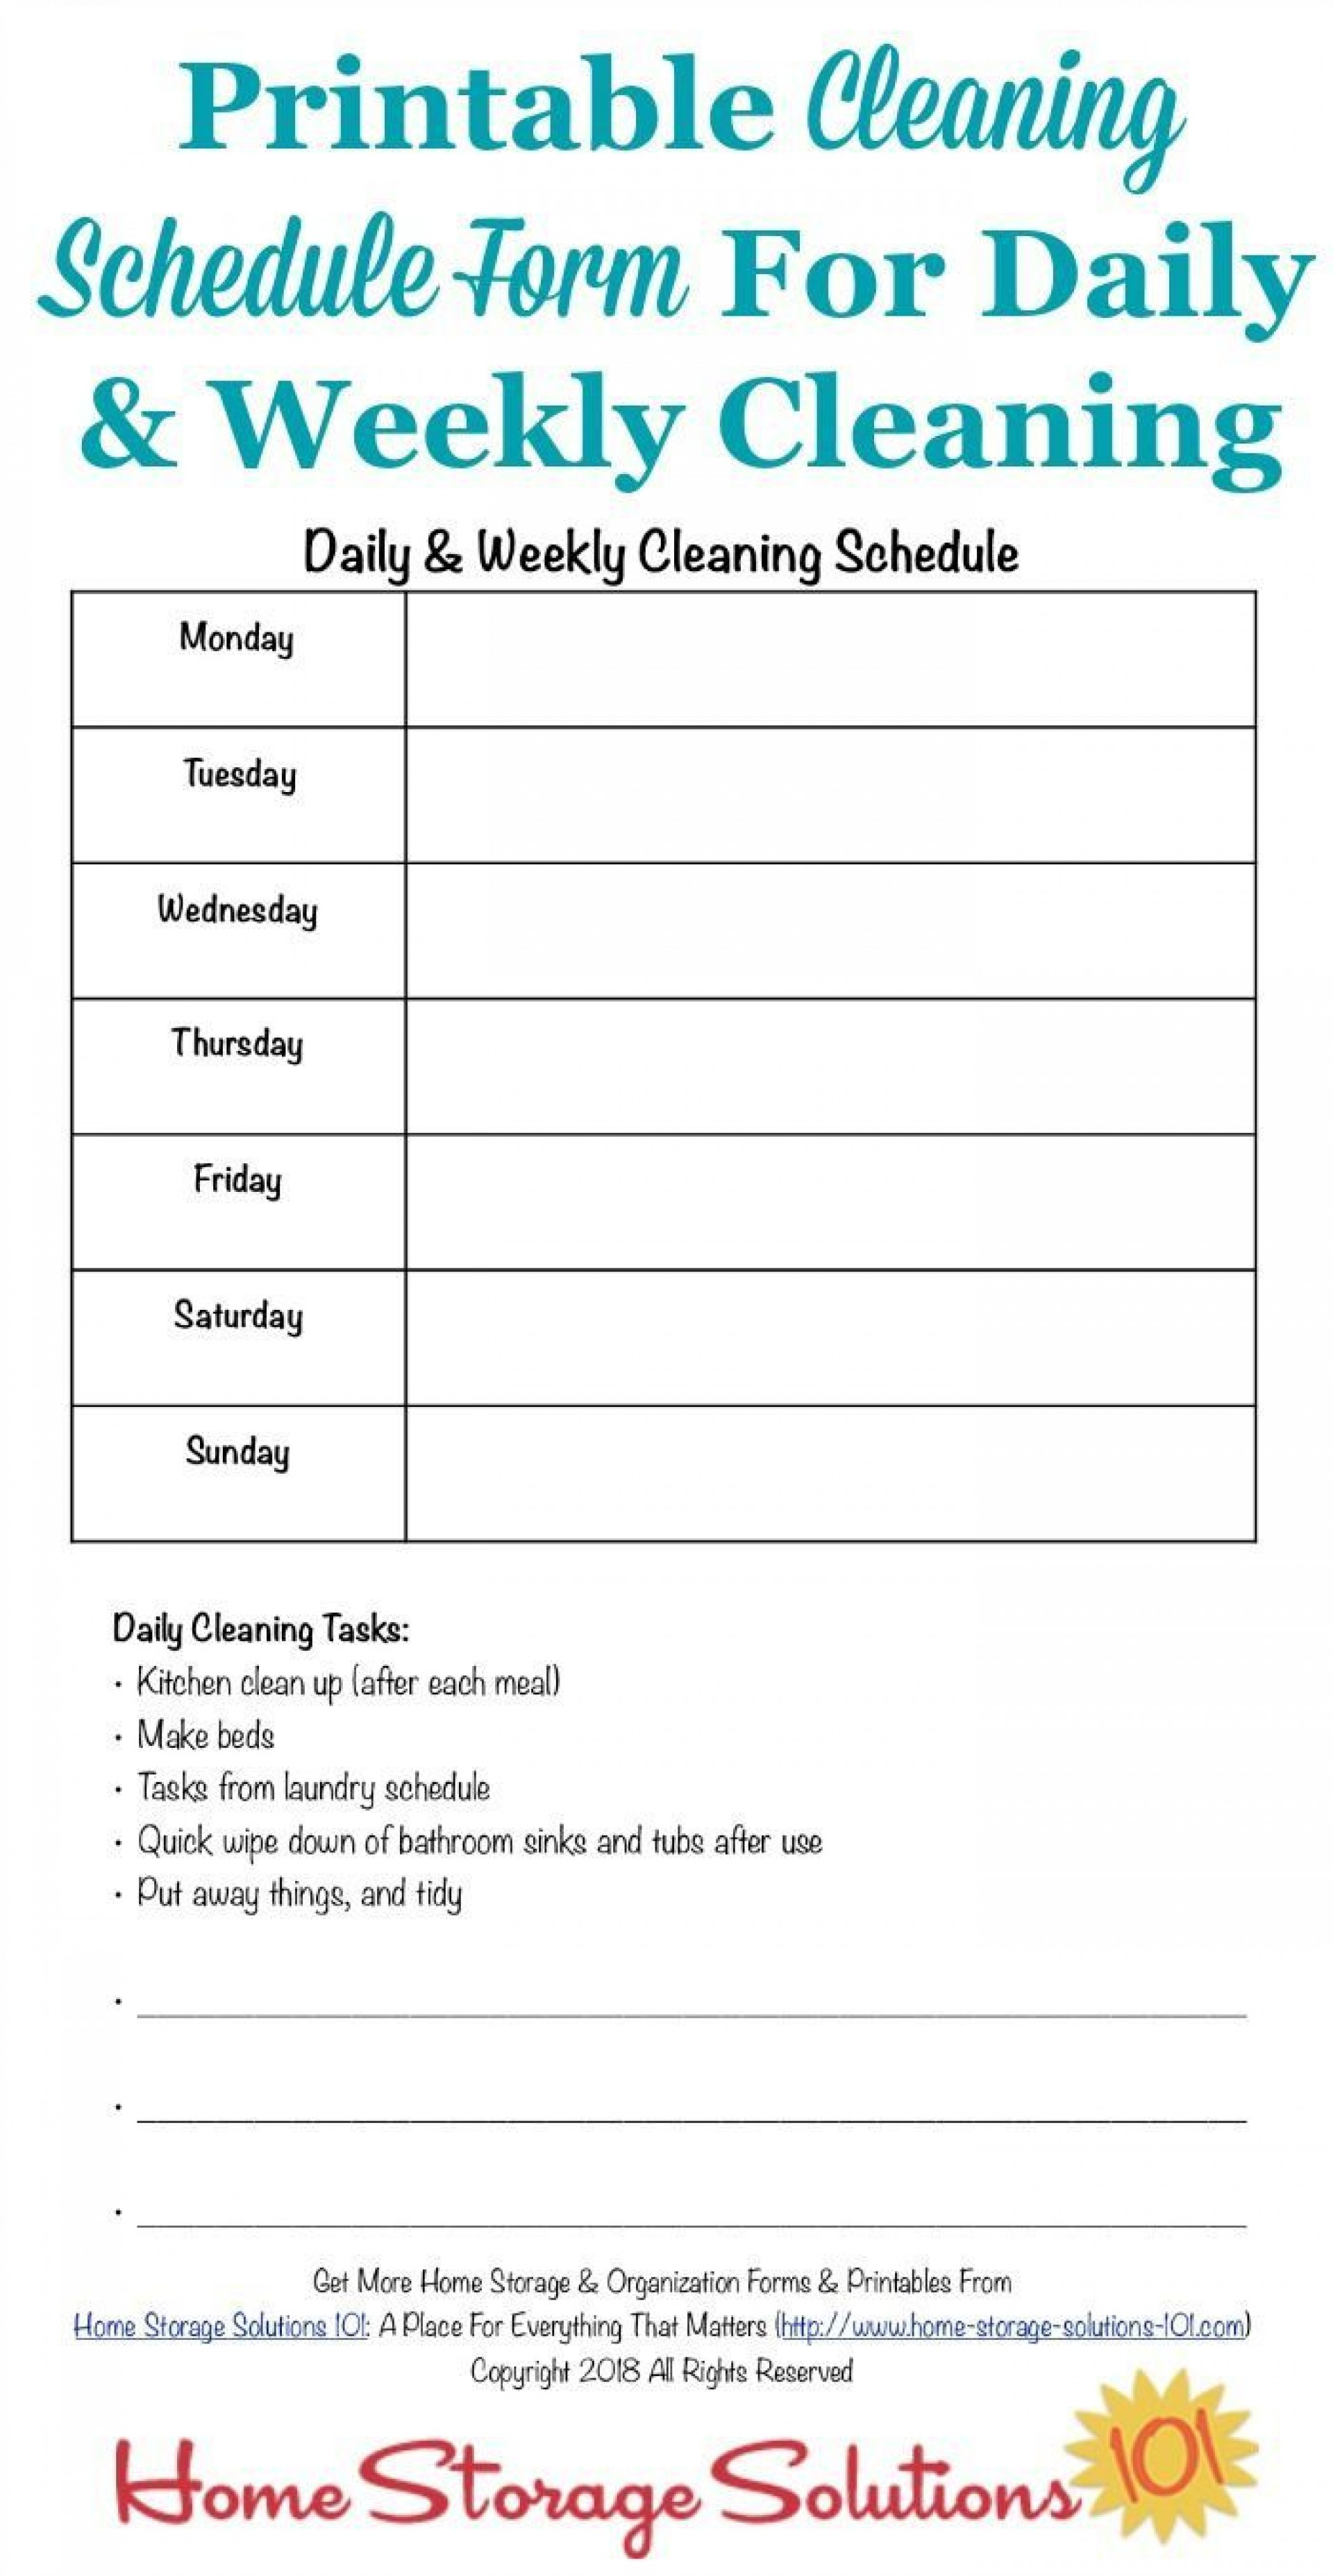 001 Rare Weekly Cleaning Schedule Form Highest Quality  Template Restaurant Excel1920